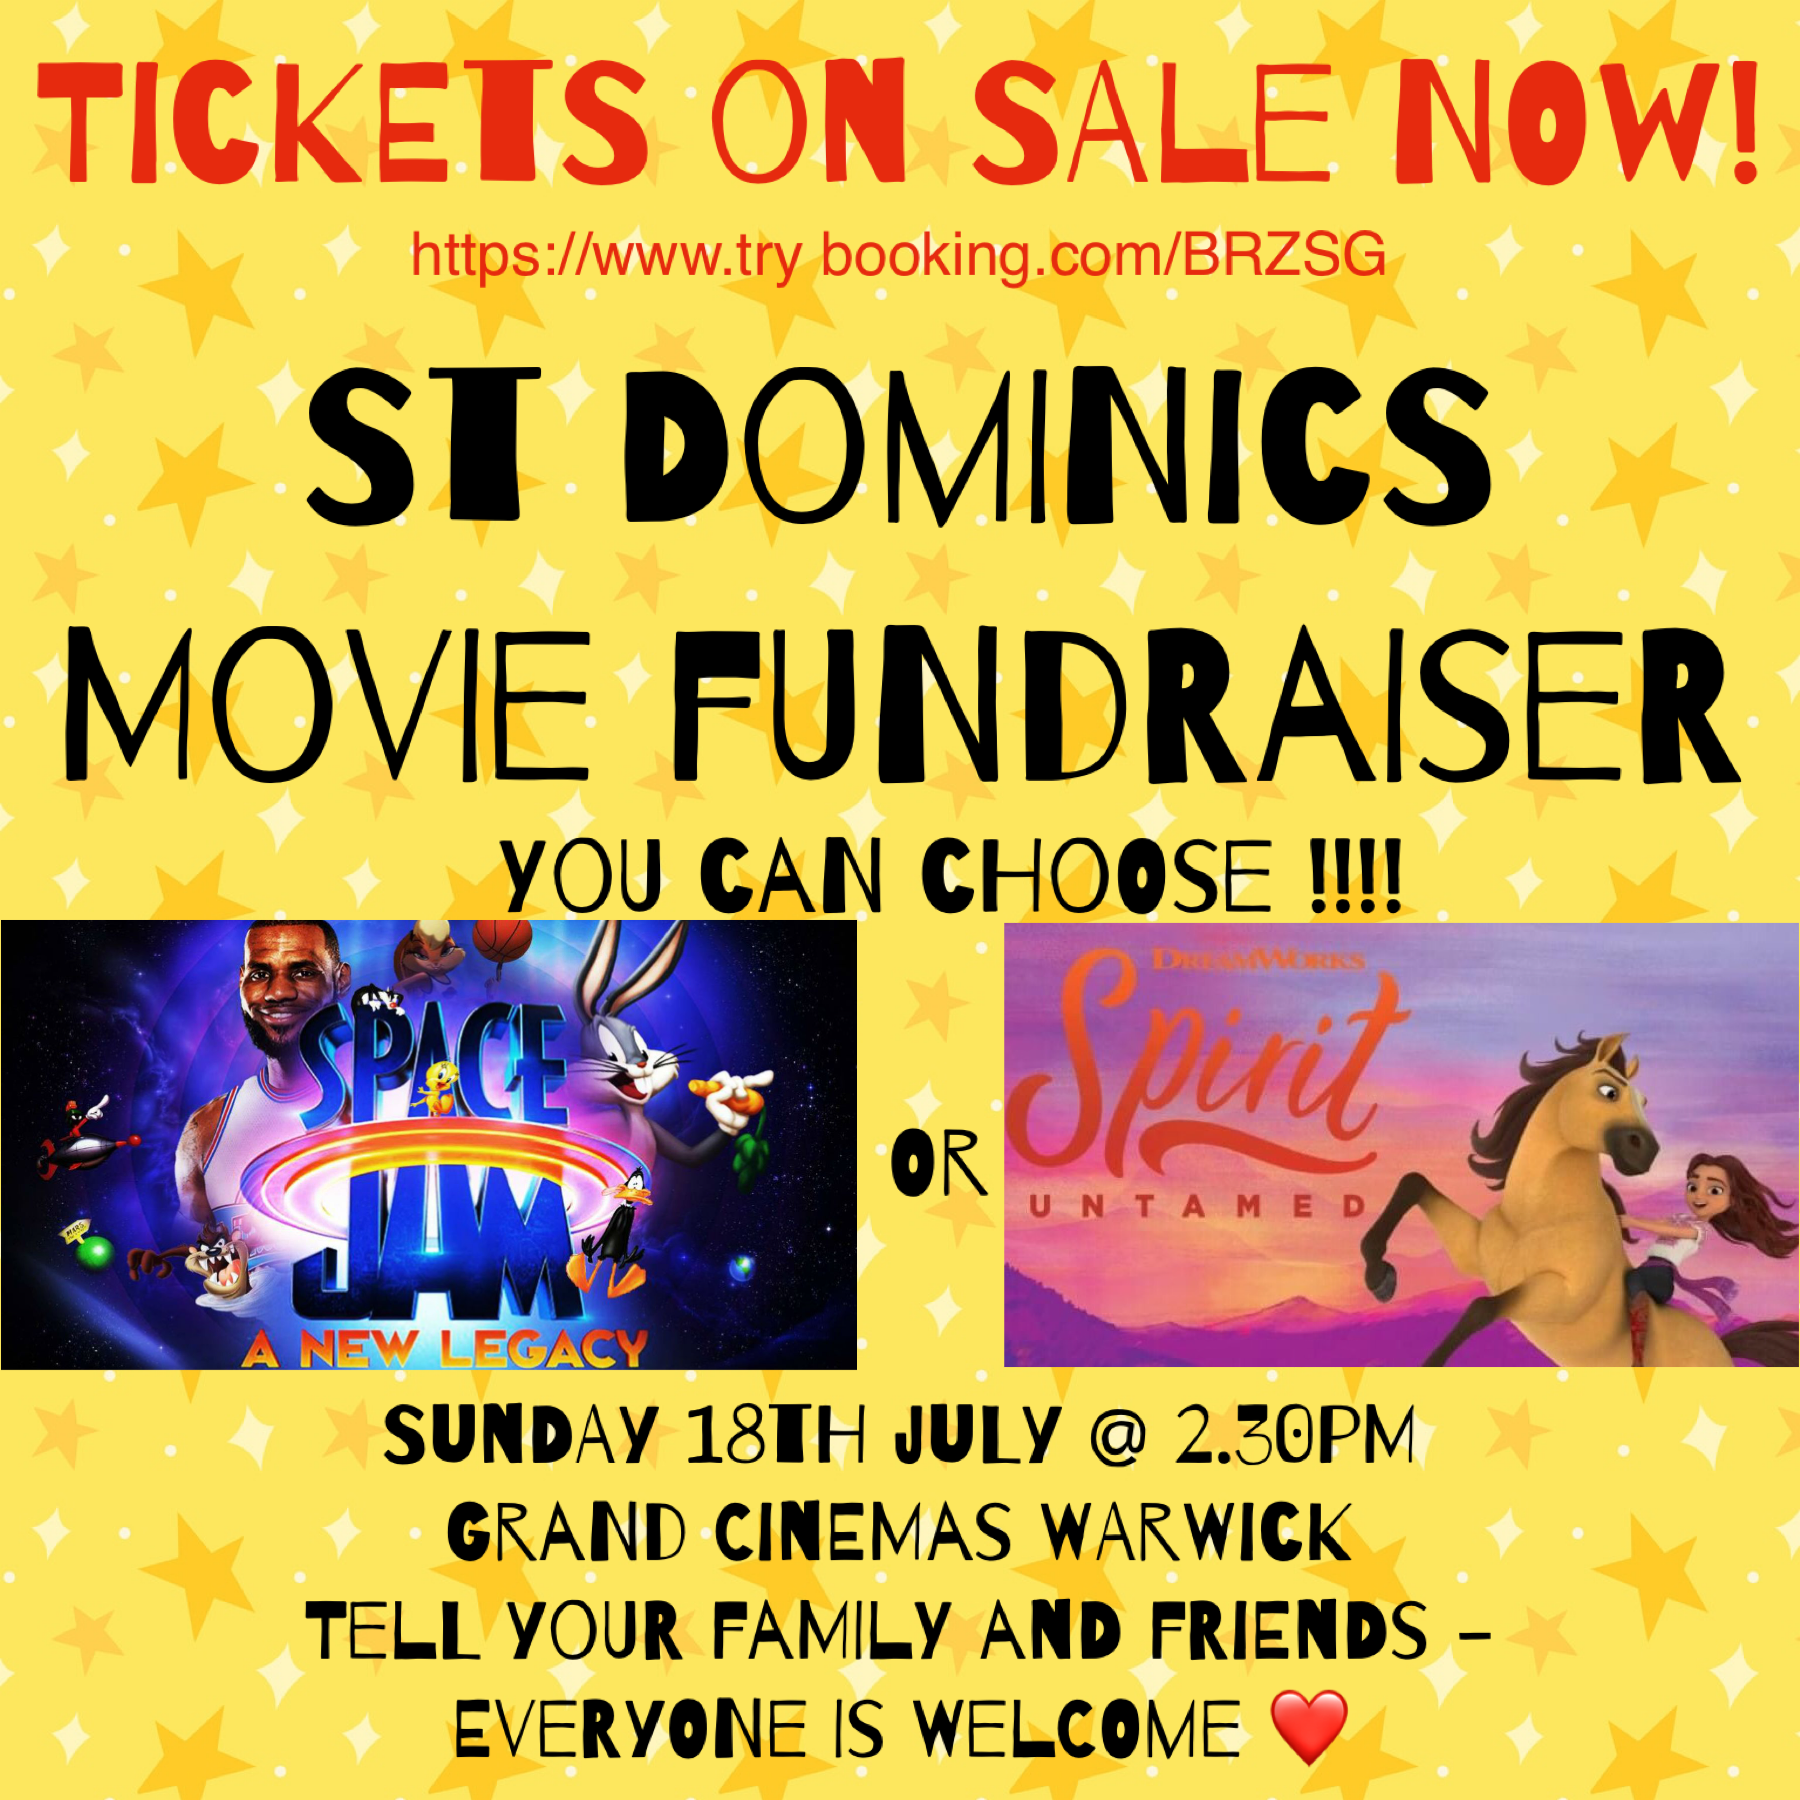 St Dominic's Movie Fundraiser - Tickets on sale now via the link in the poster!